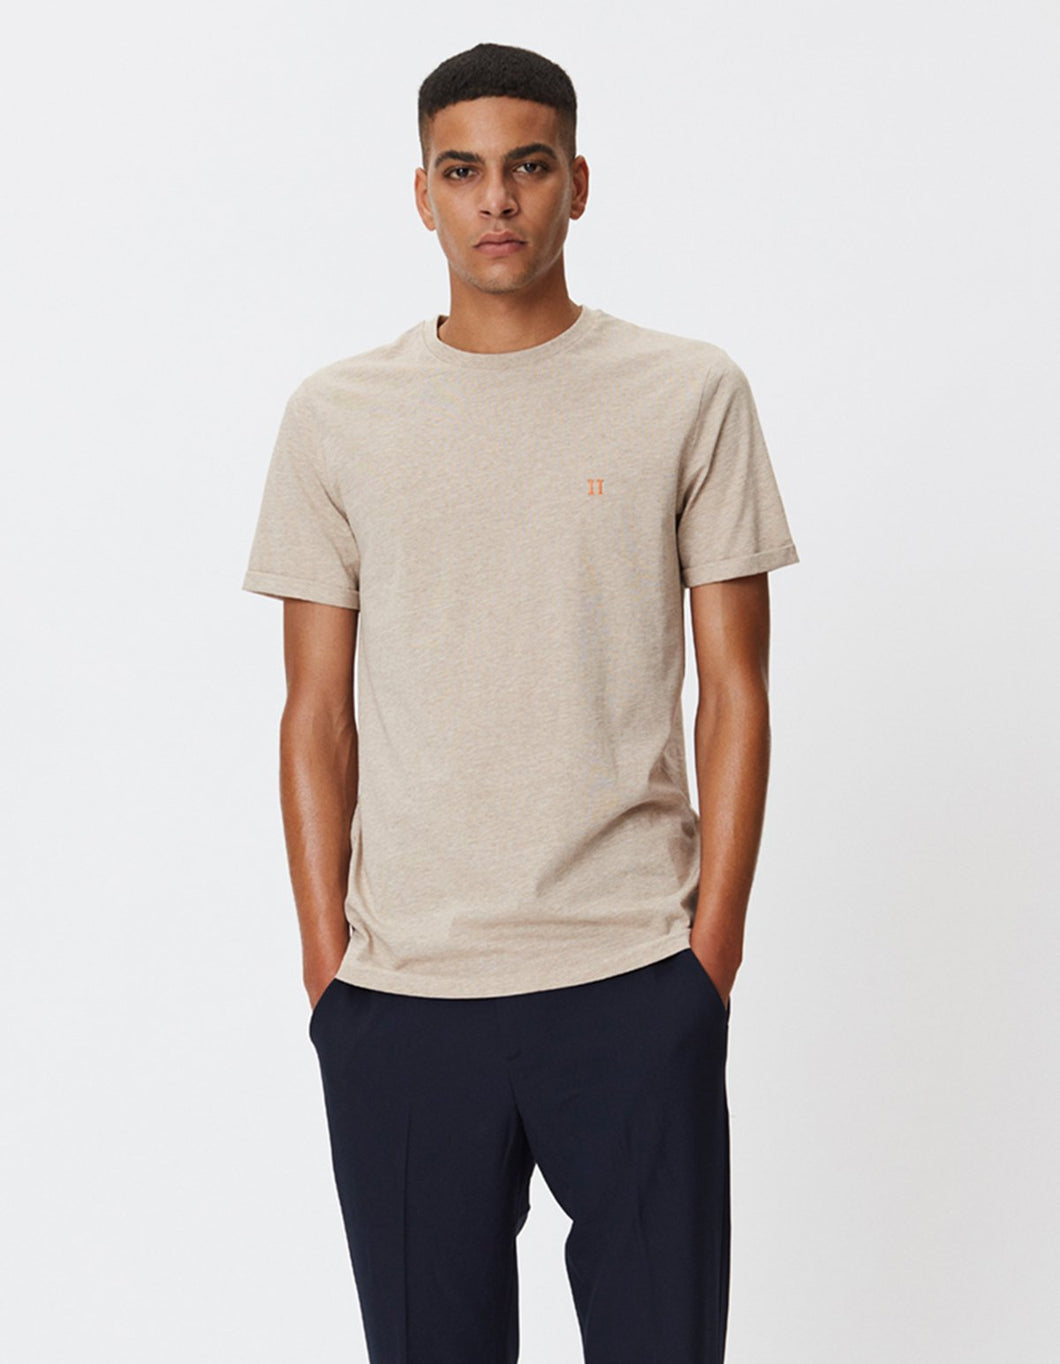 LES DEUX NØRREGAARD T-SHIRT LIGHT BROWN MELANGE